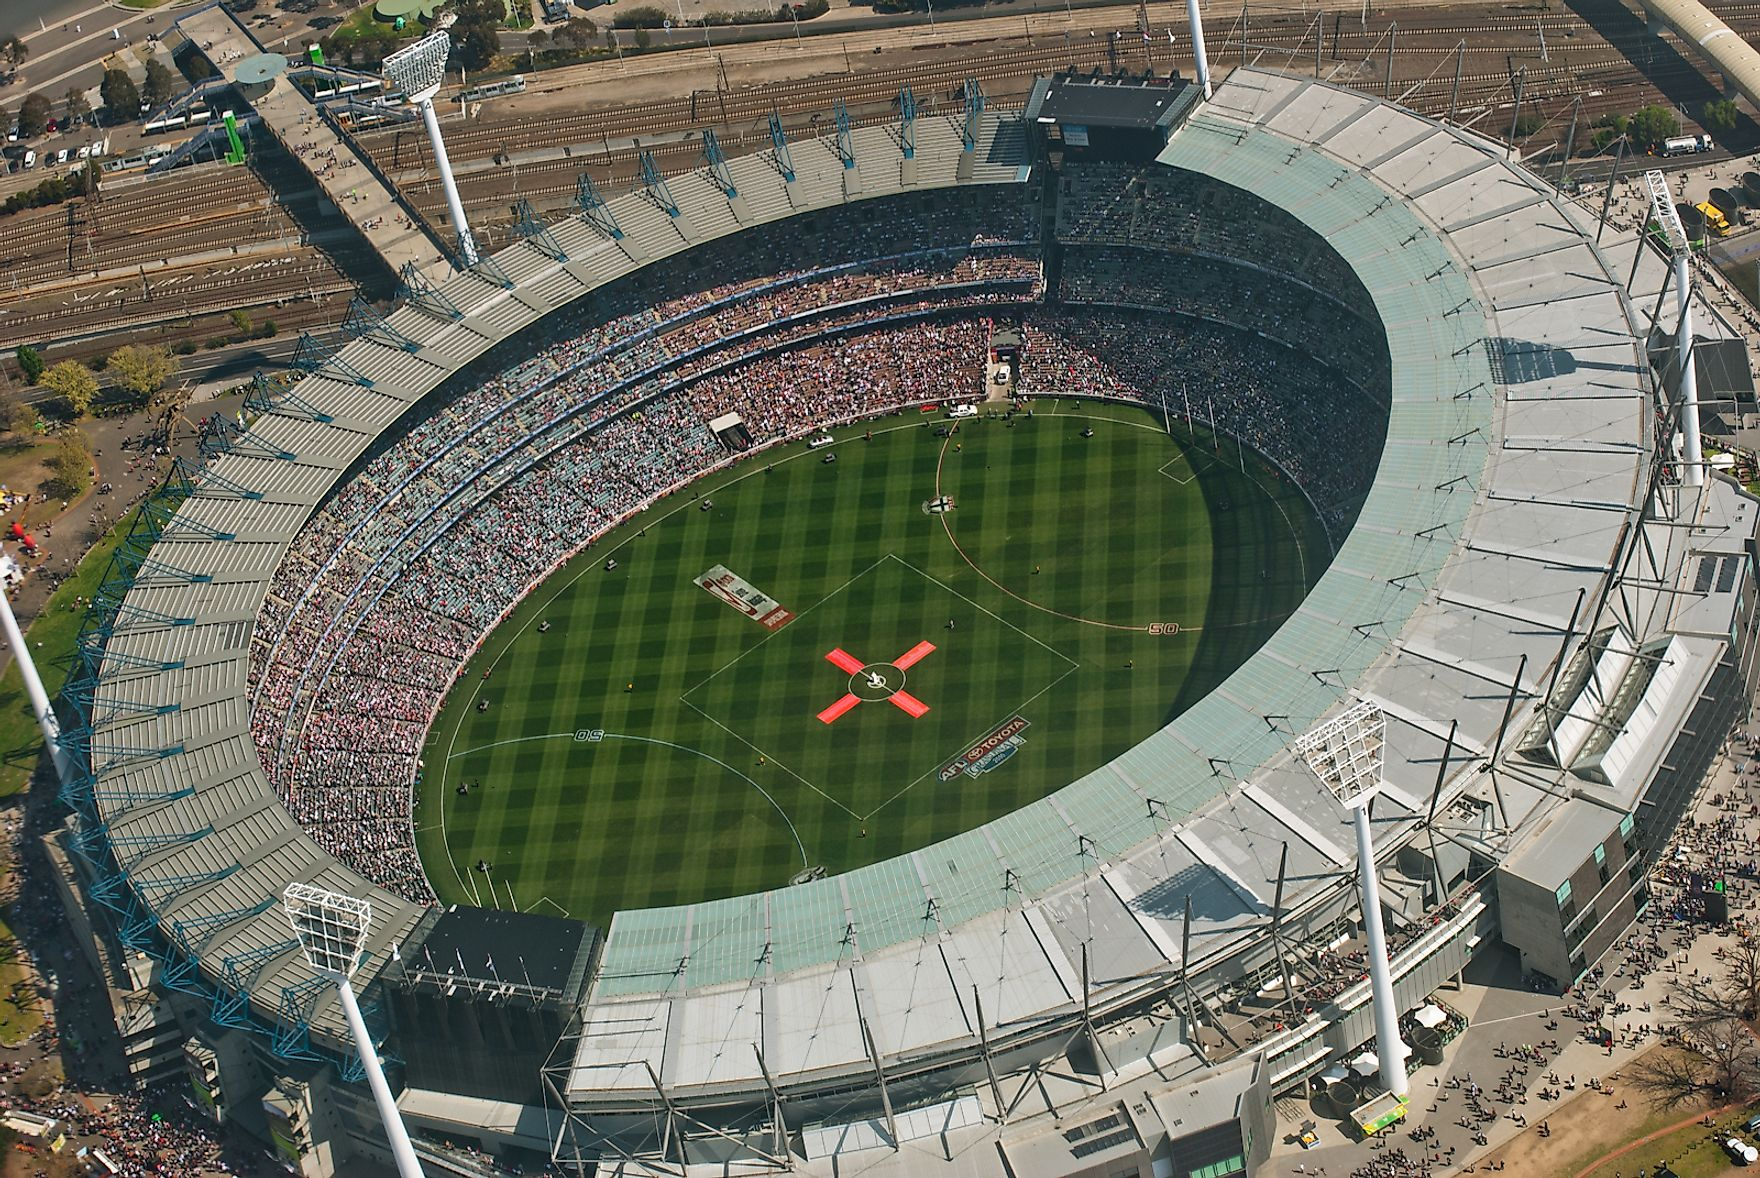 The Melbourne Cricket Ground In Melbourne, Australia.